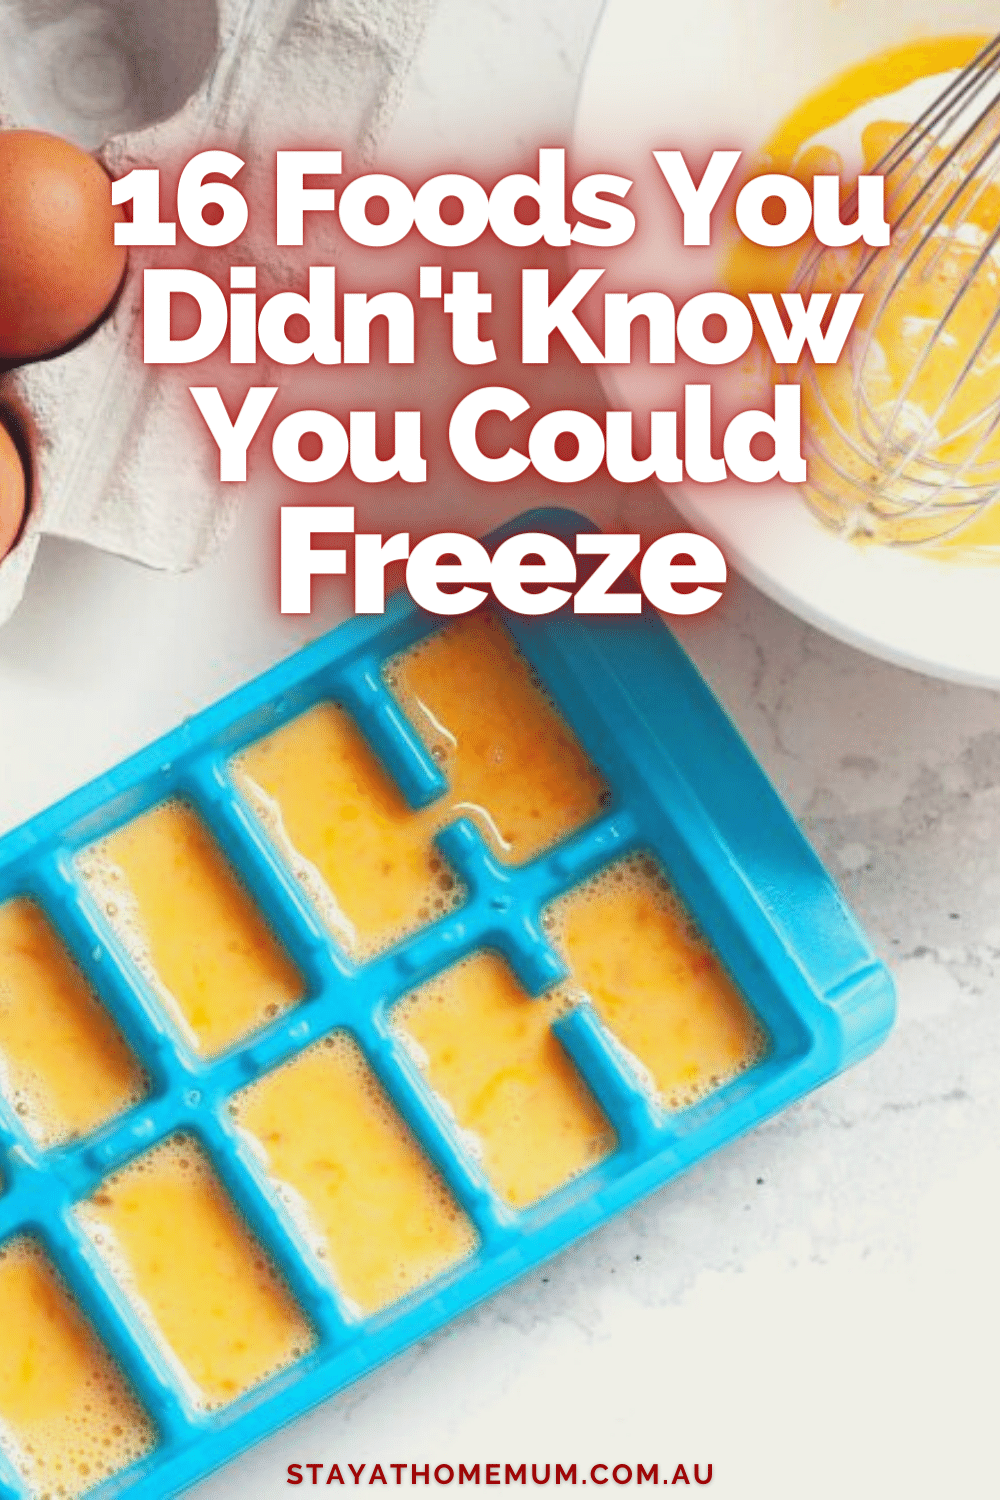 16 Foods You Didn't Know You Could Freeze | Stay At Home Mum